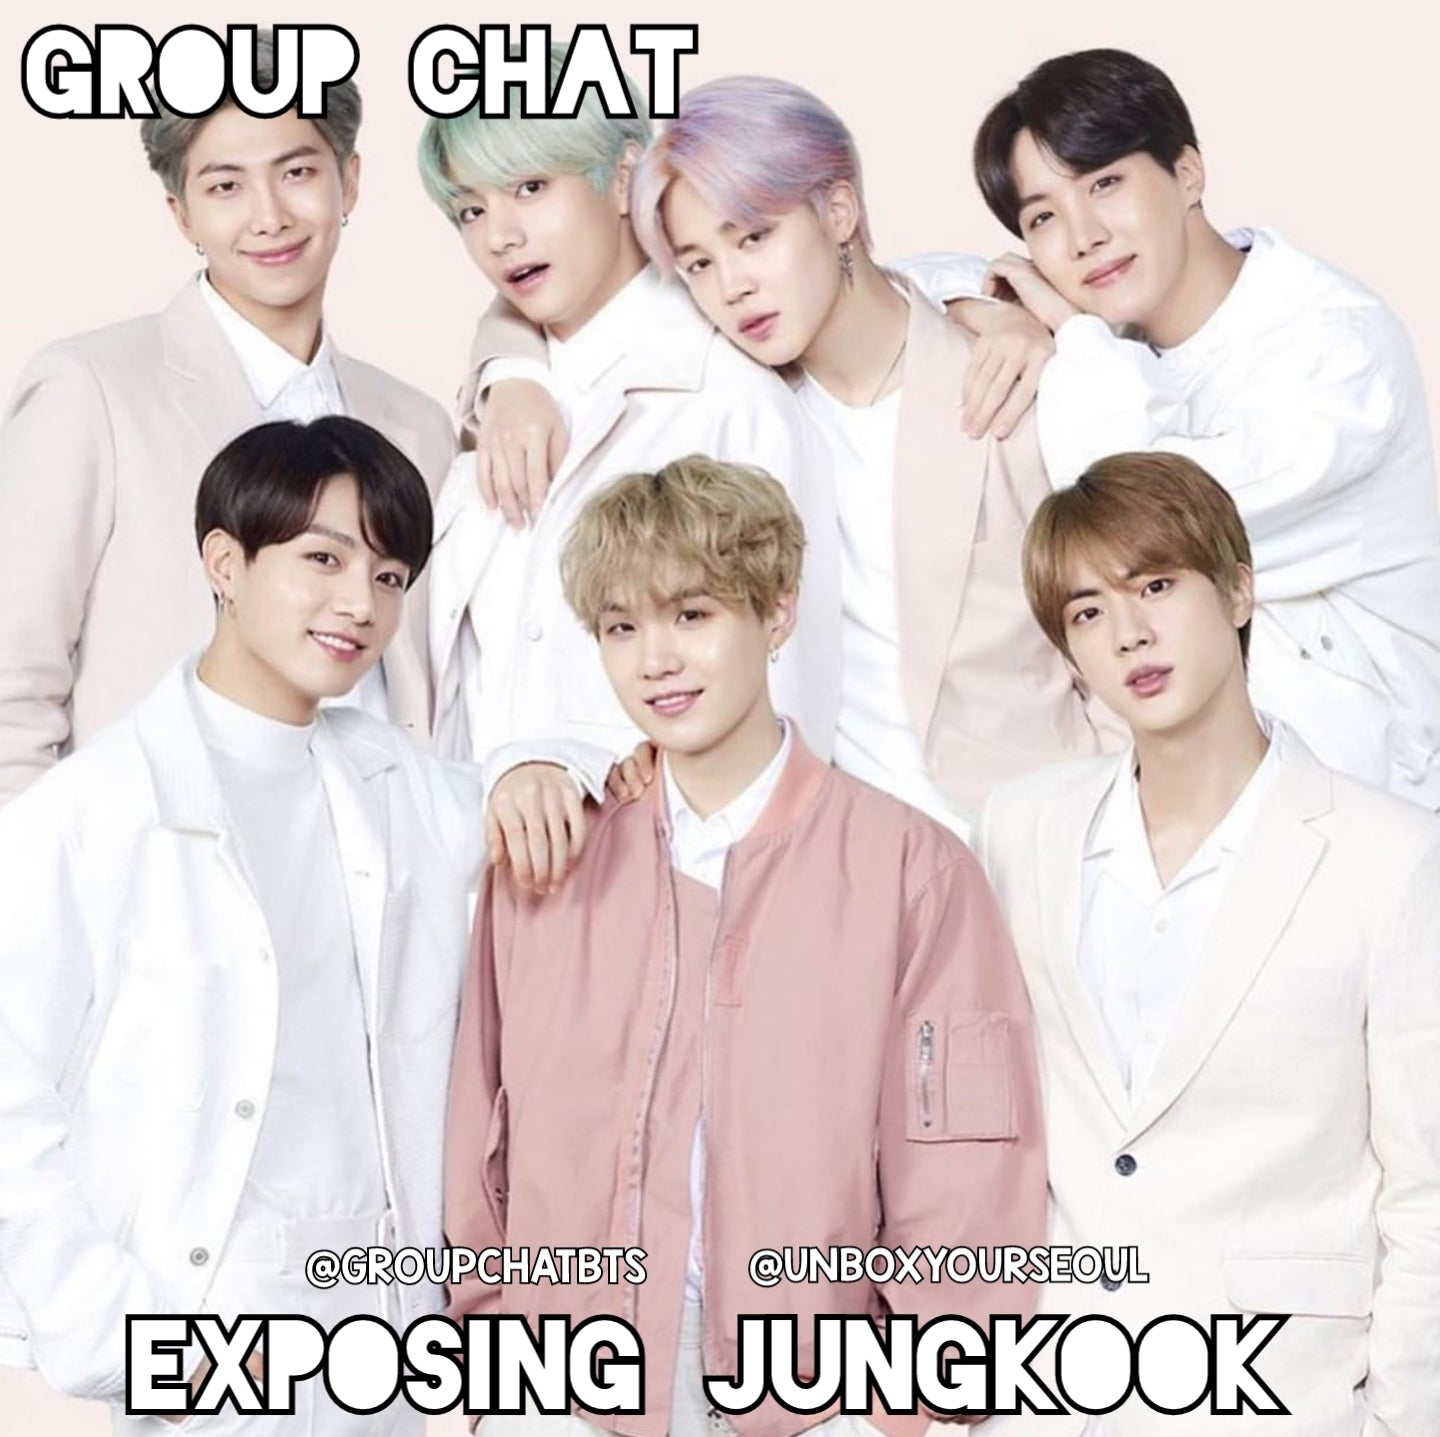 BTS imagines groupchat bts